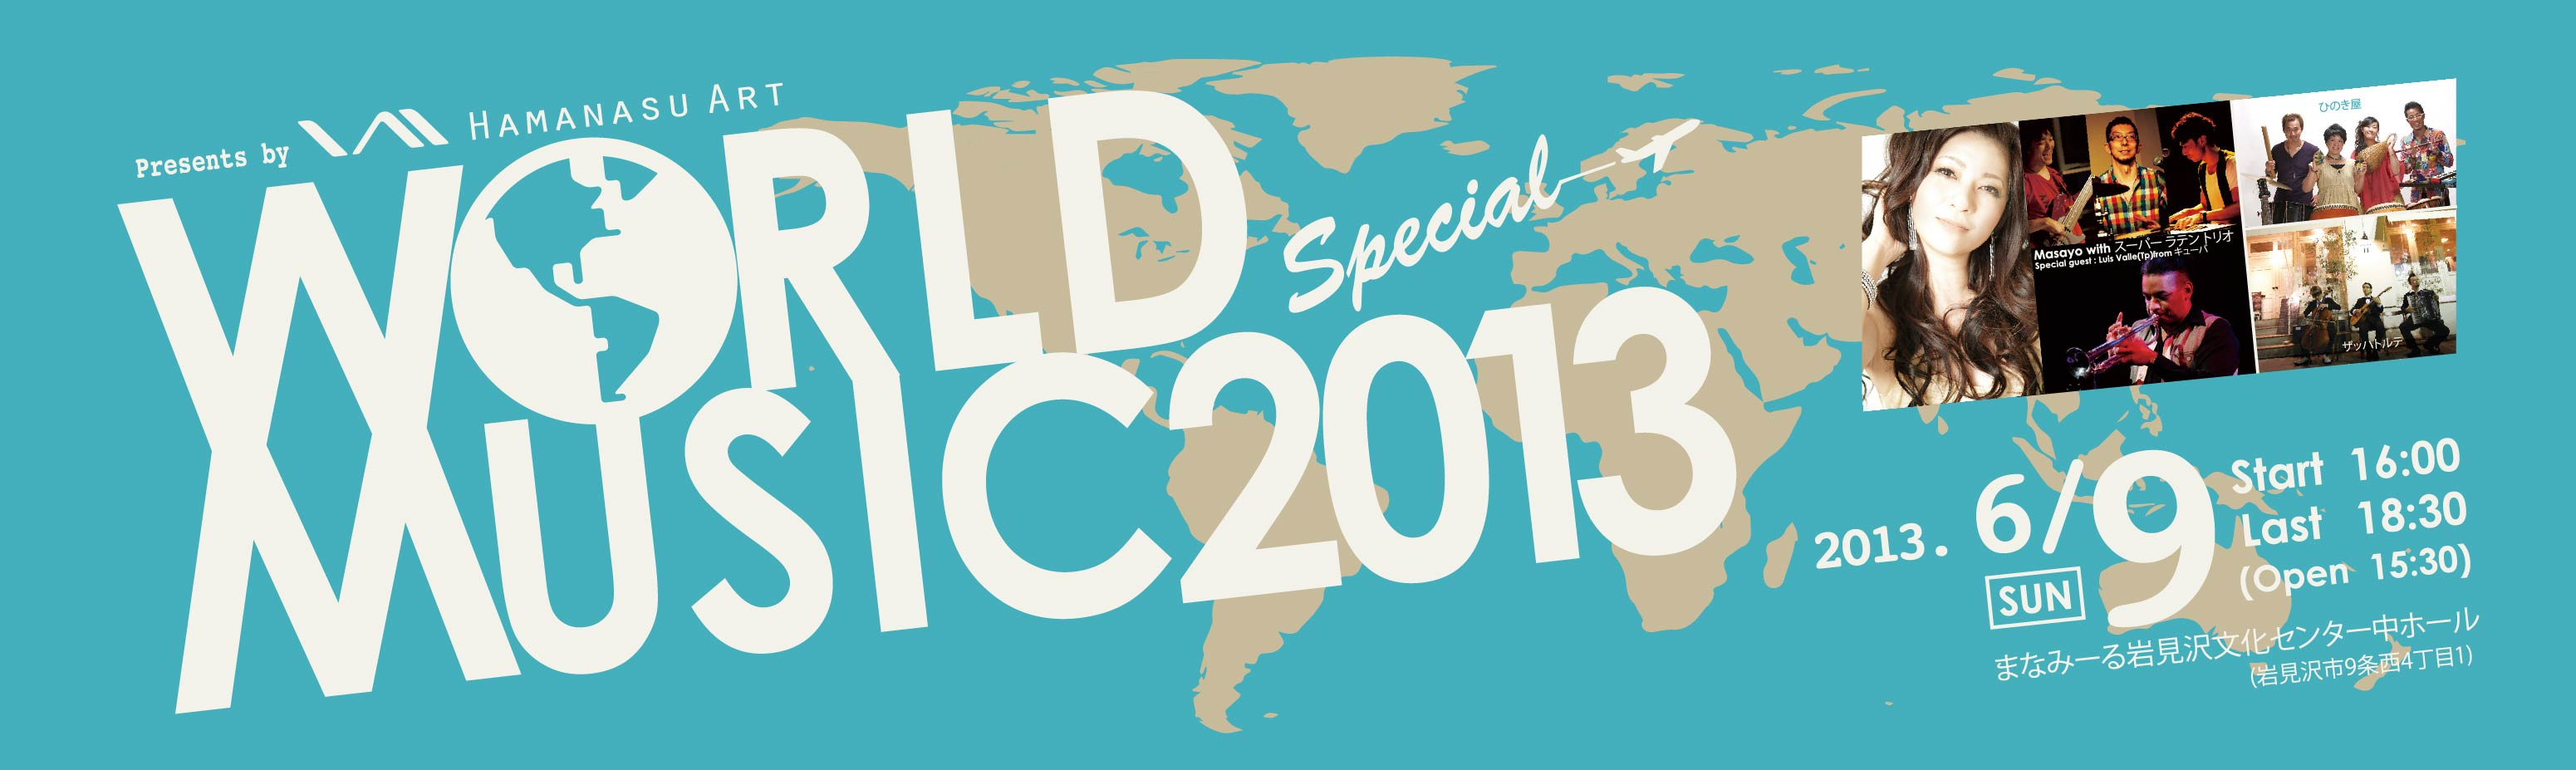 WORLD MUSIC 2013 SPECIAL